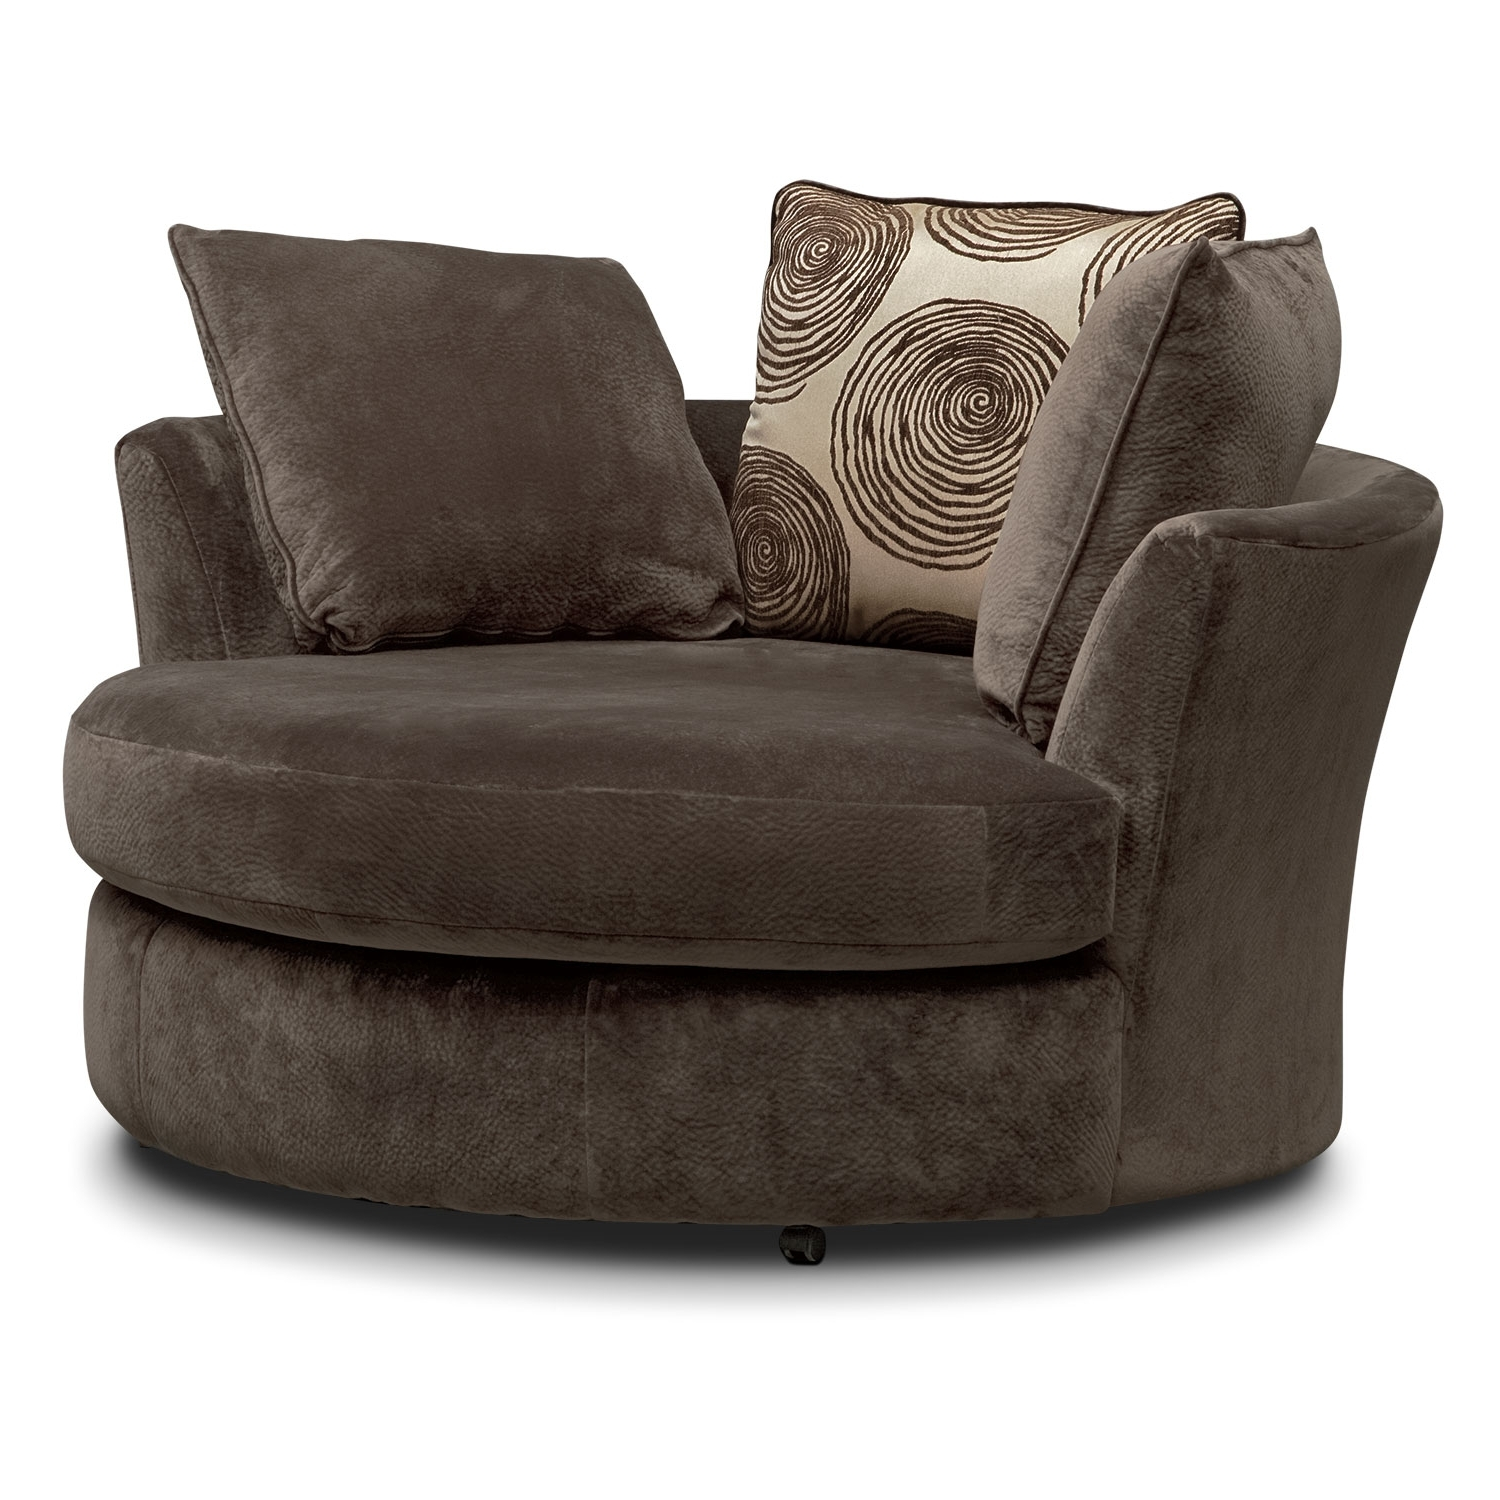 Trendy Cordelle Swivel Chair – Chocolate (View 20 of 20)